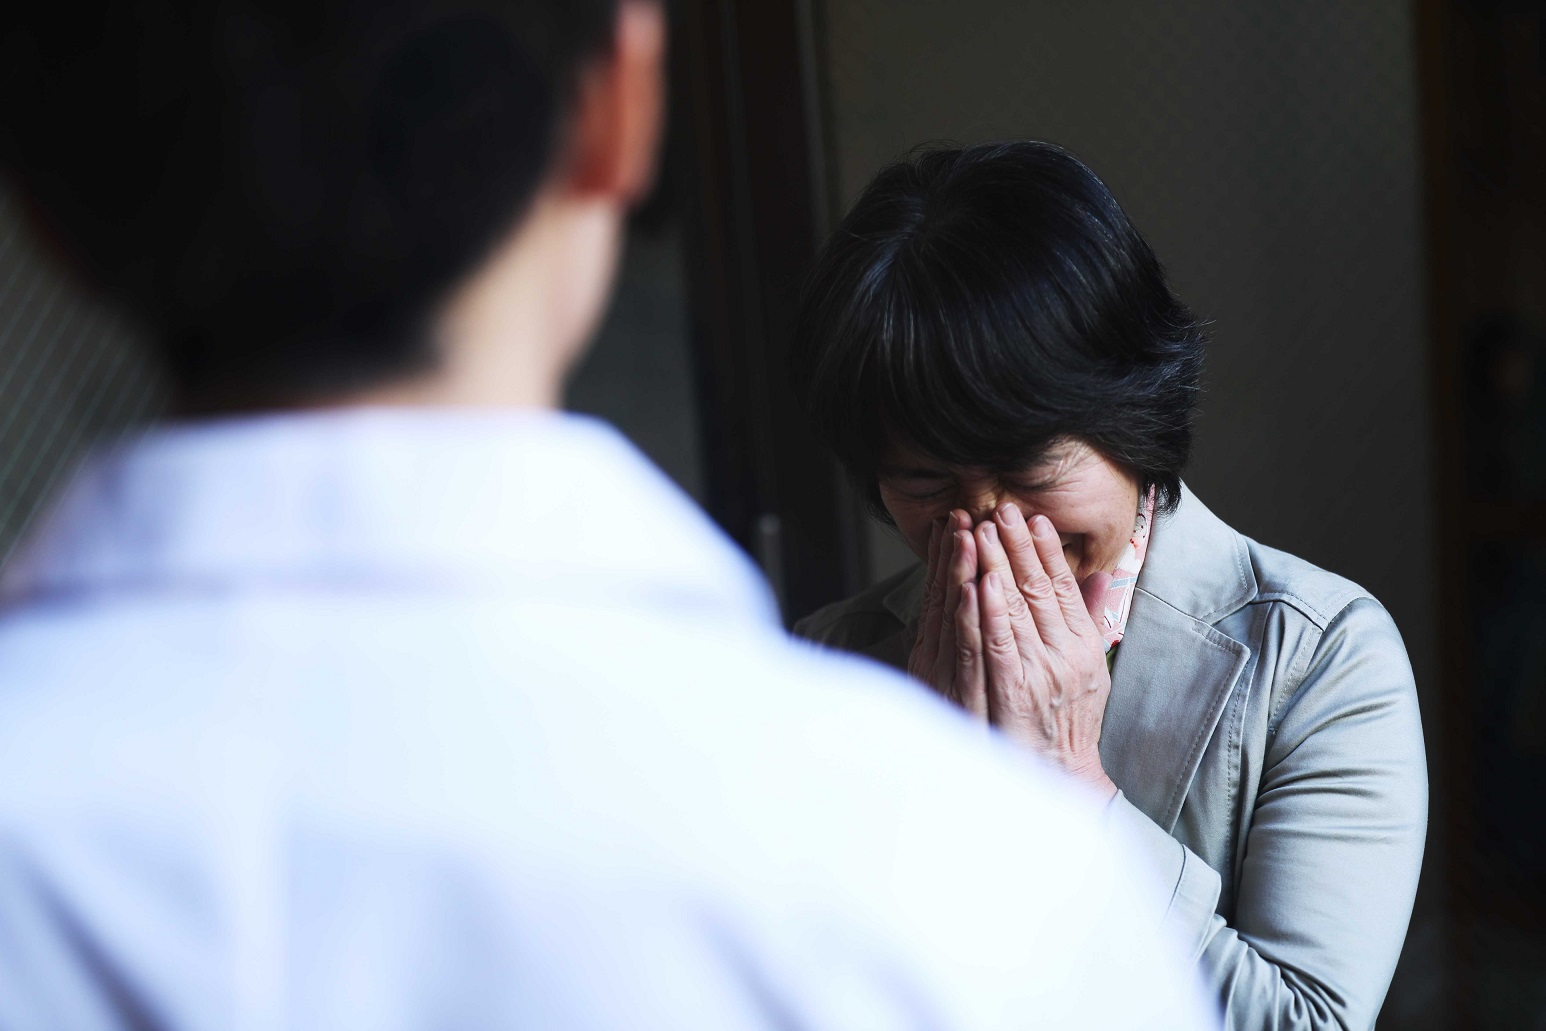 woman crying while speaking with doctor